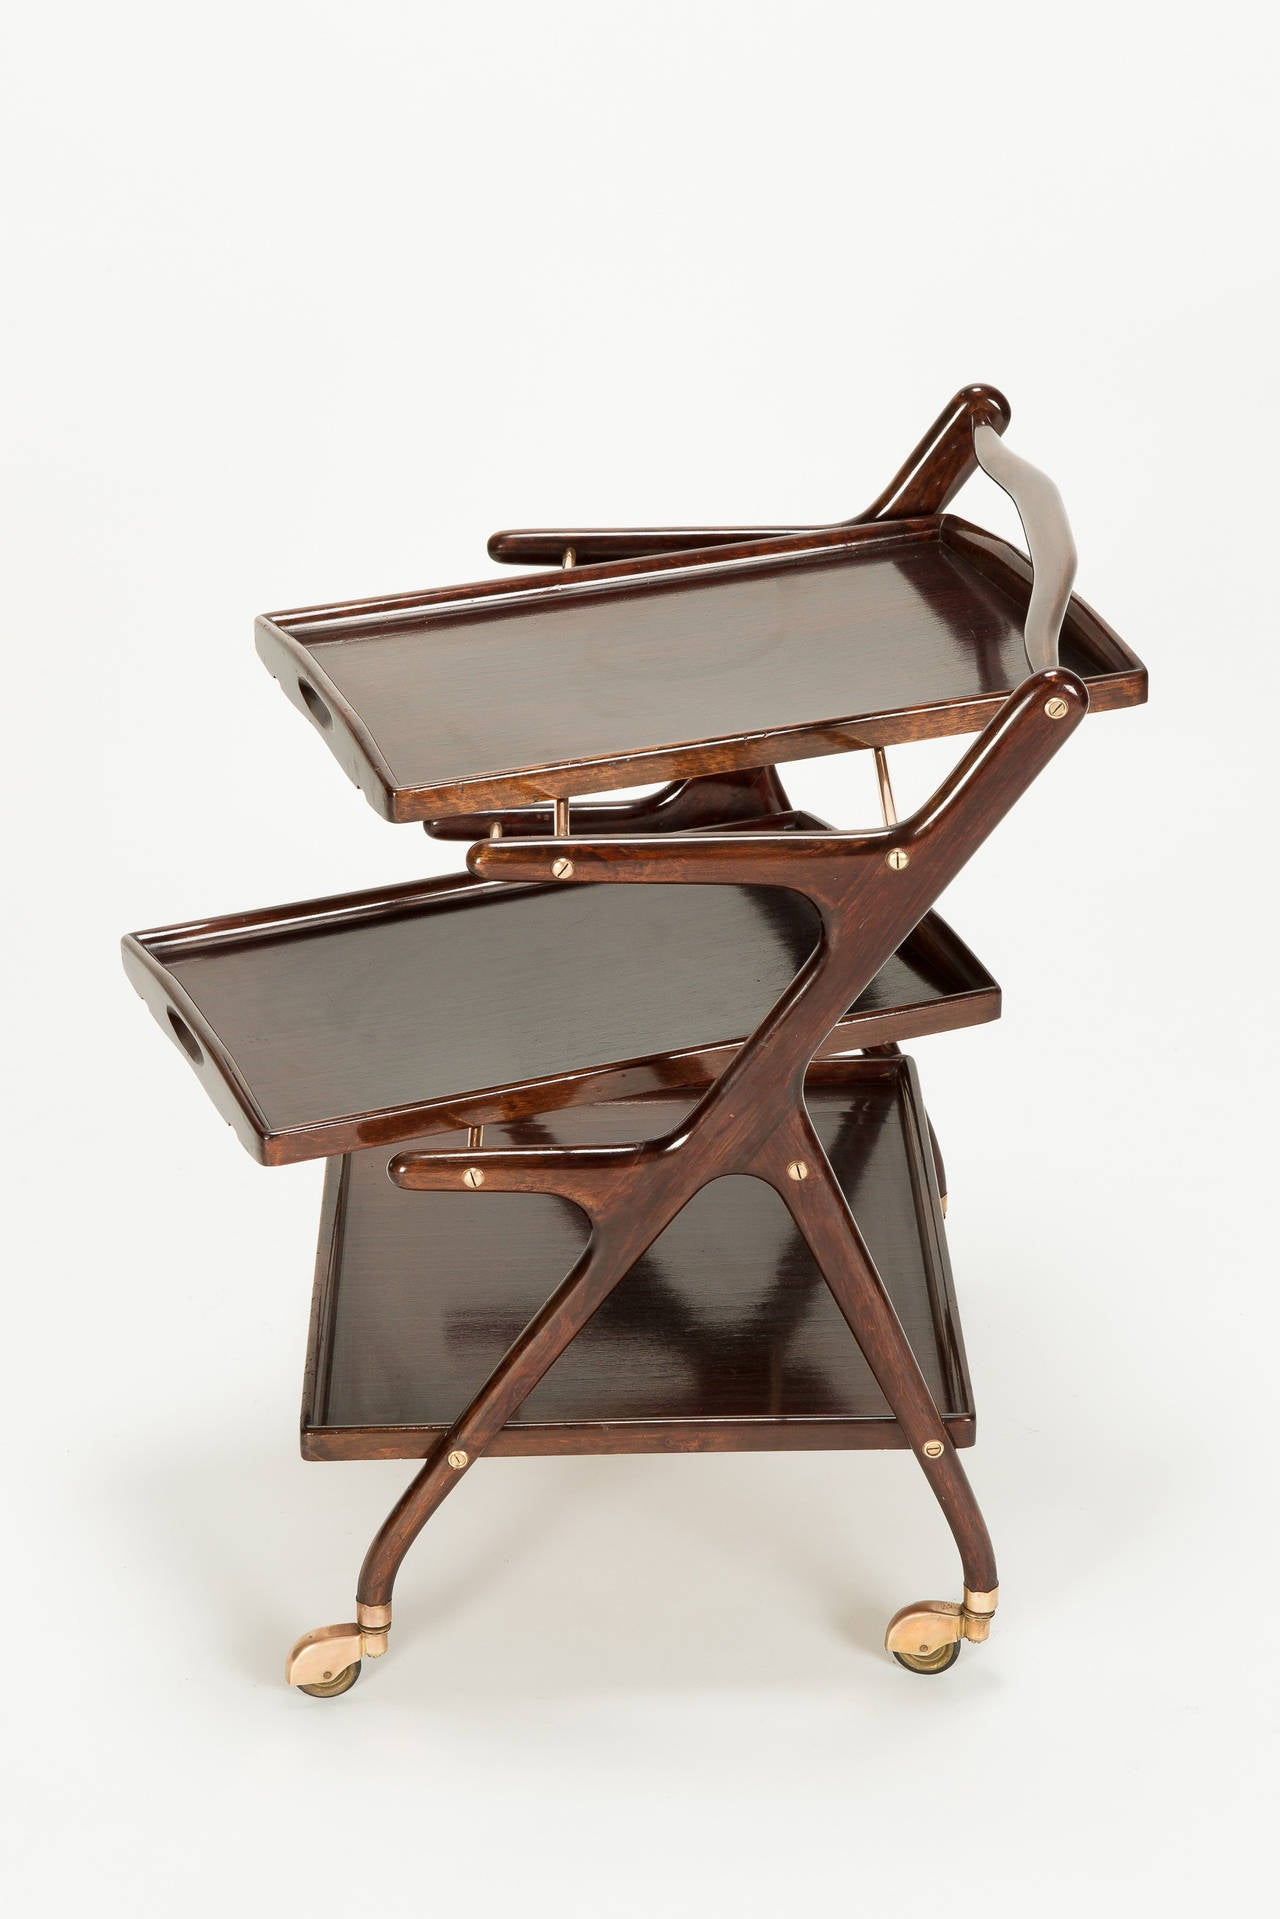 Mid-20th Century Italian Mahogany Serving Trolley by Cesare Lacca, 1950s